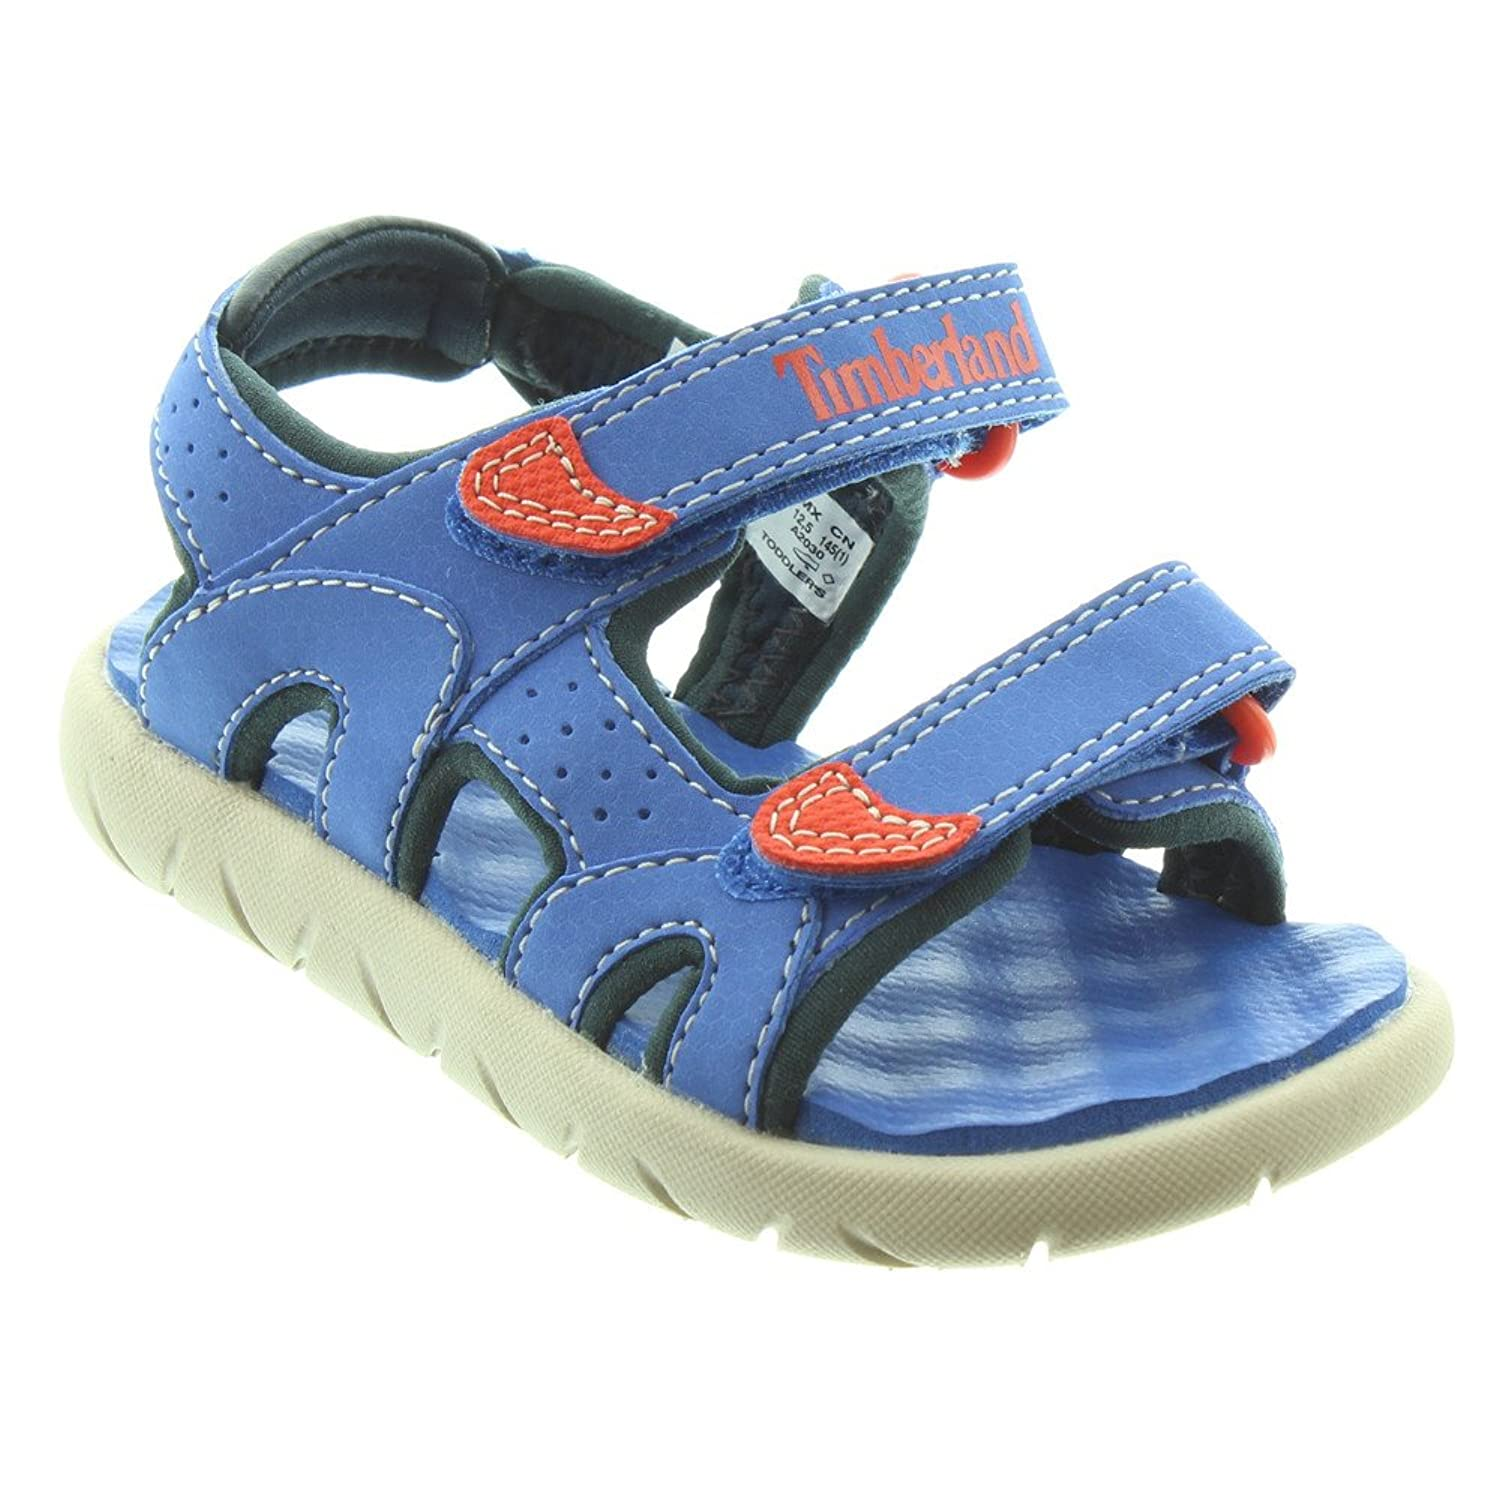 Timberland Kids Perkins Sandals In Blue Amazon Shoes & Bags